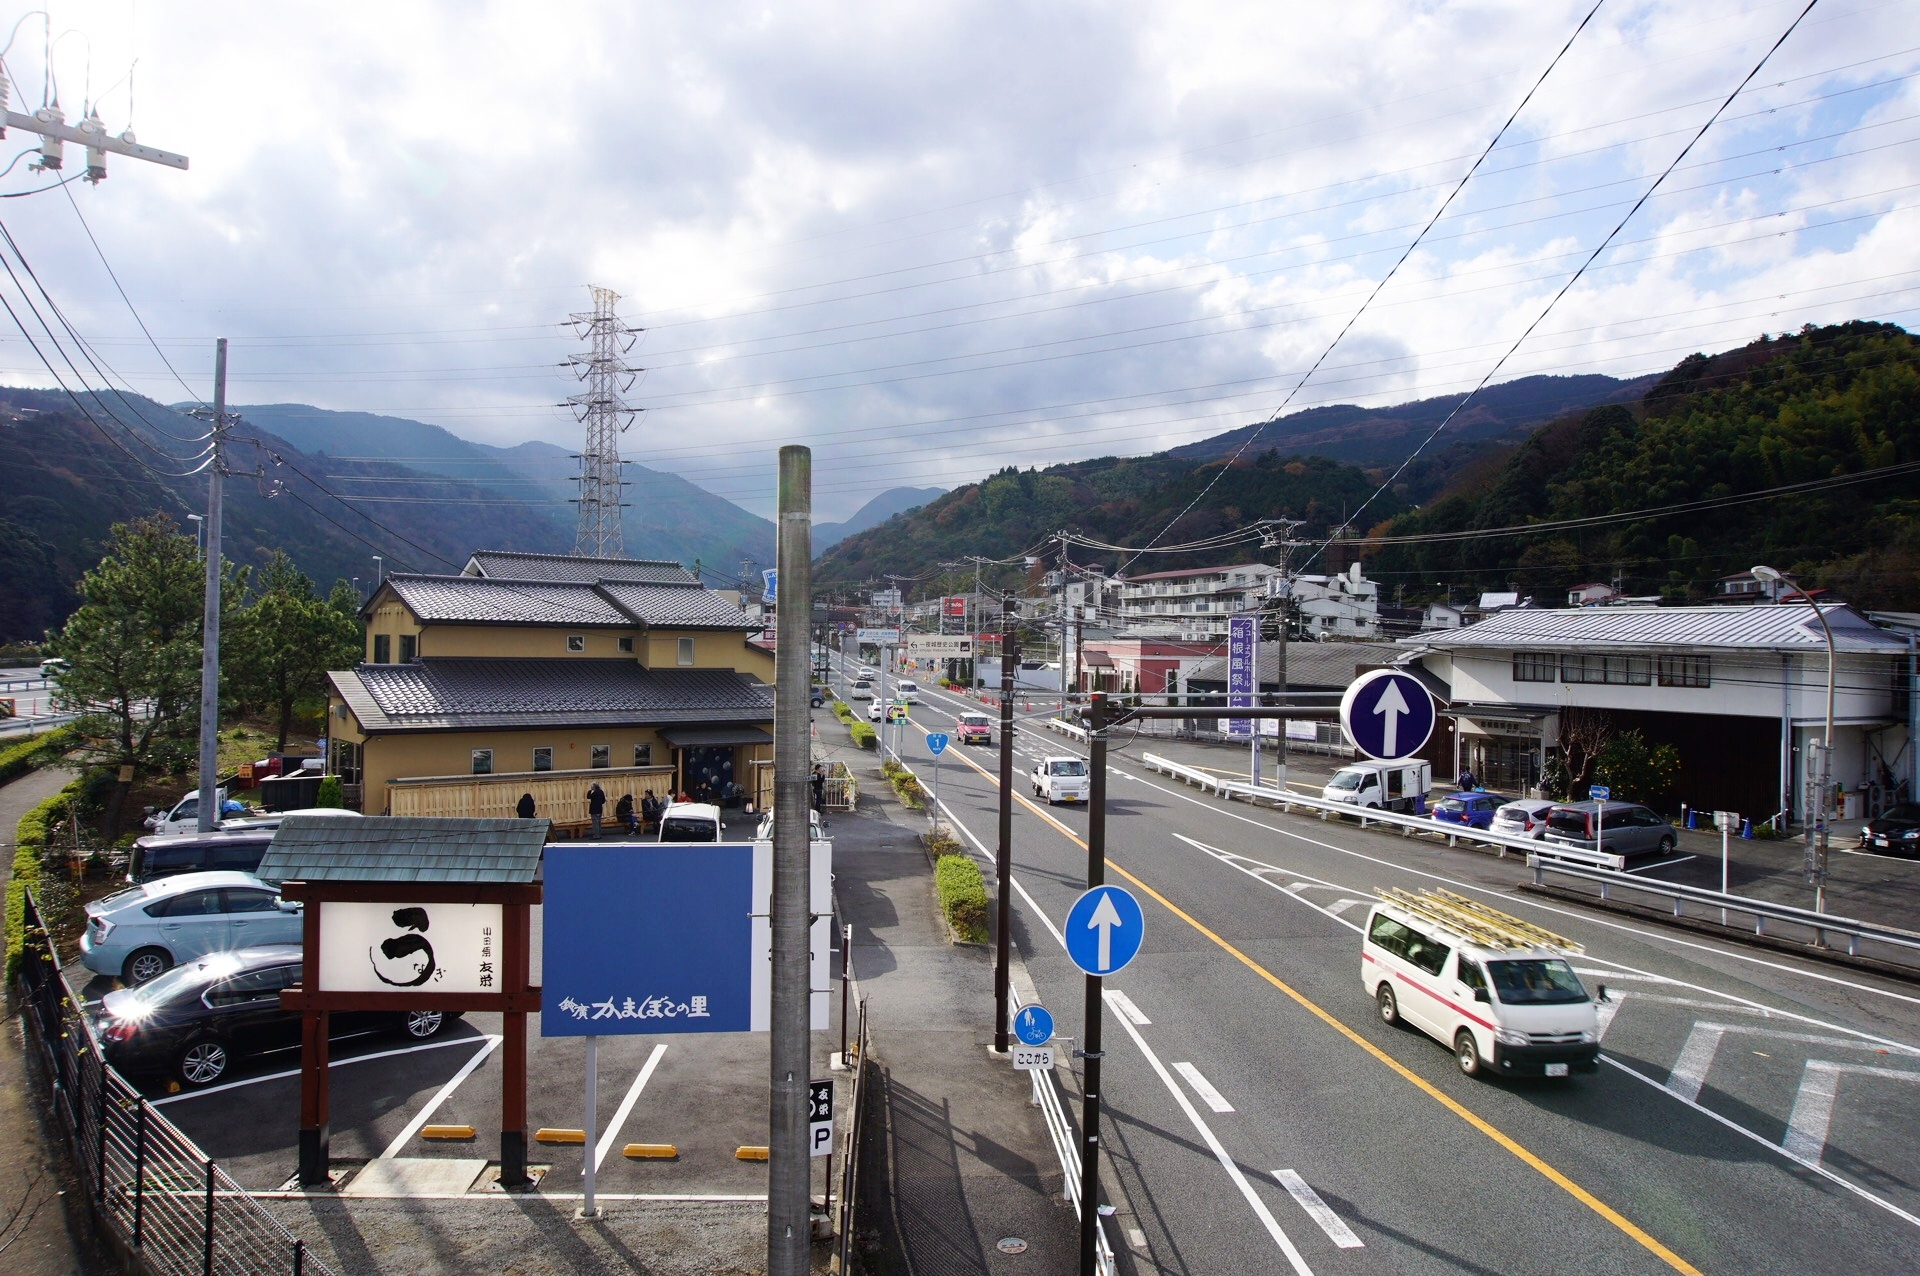 Parking 1 - Tomoei Eel Hakone